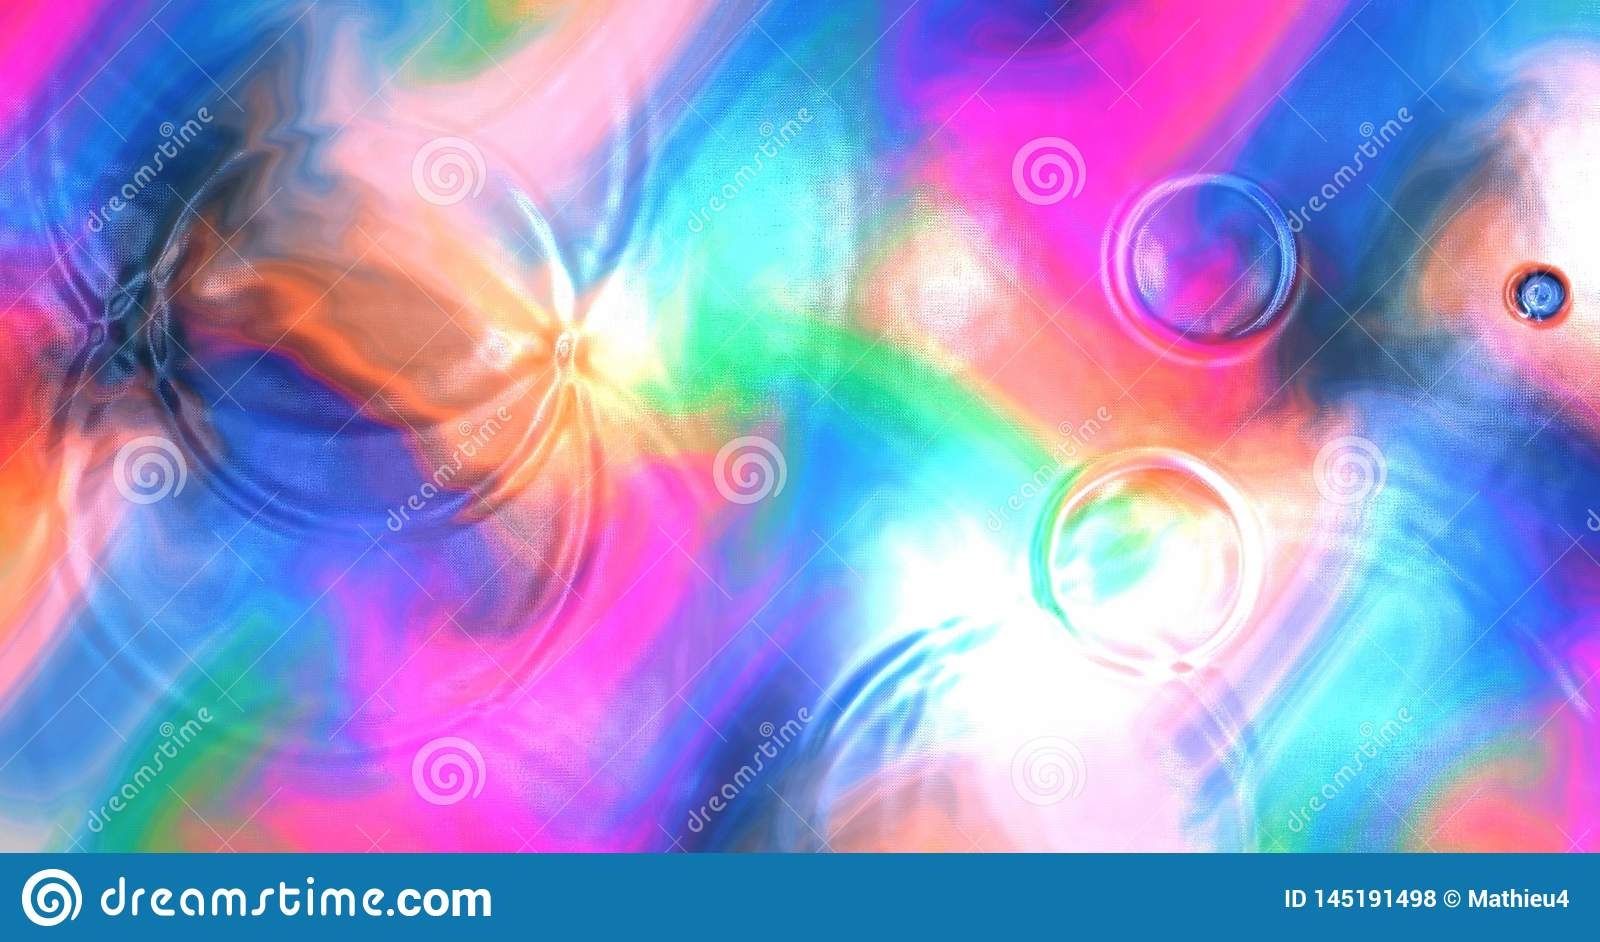 Abstract Colorful Wallpaper Background Water Ripples Waves